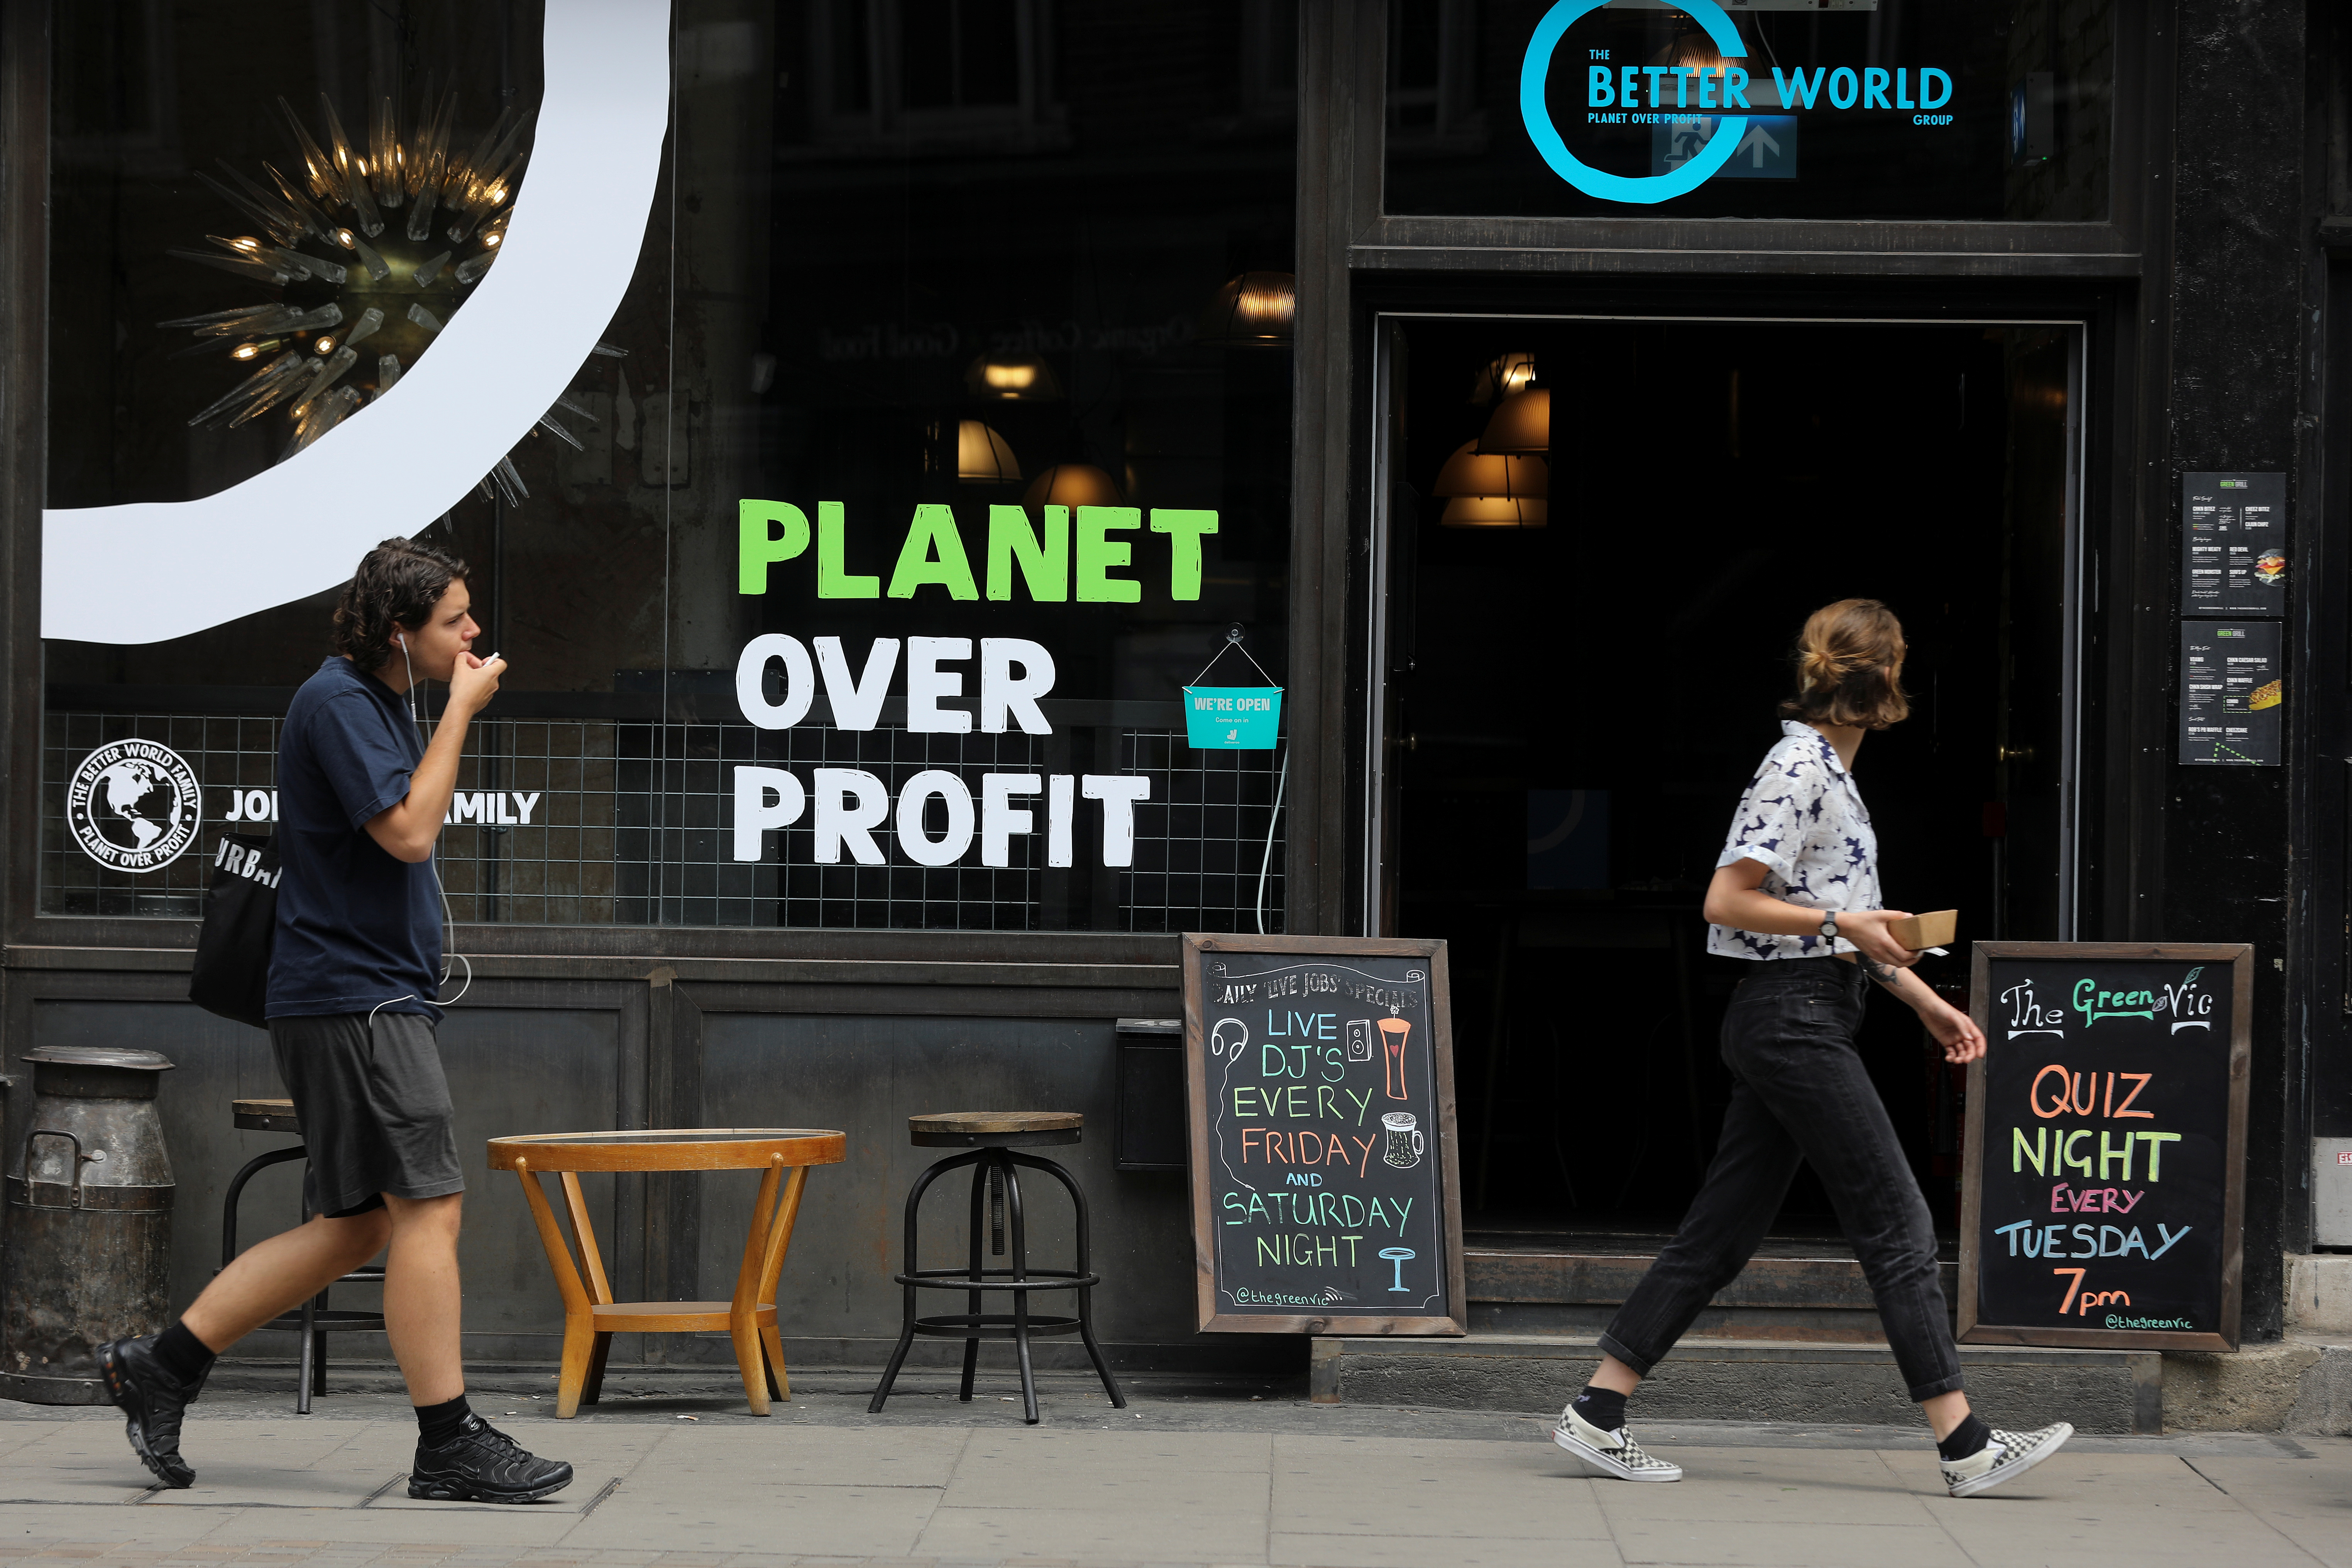 Pedestrians walk past the Green Vic, which is aiming to be the world's most ethical pub, in Shoreditch, London, Britain July 5, 2019. REUTERS/Simon Dawson